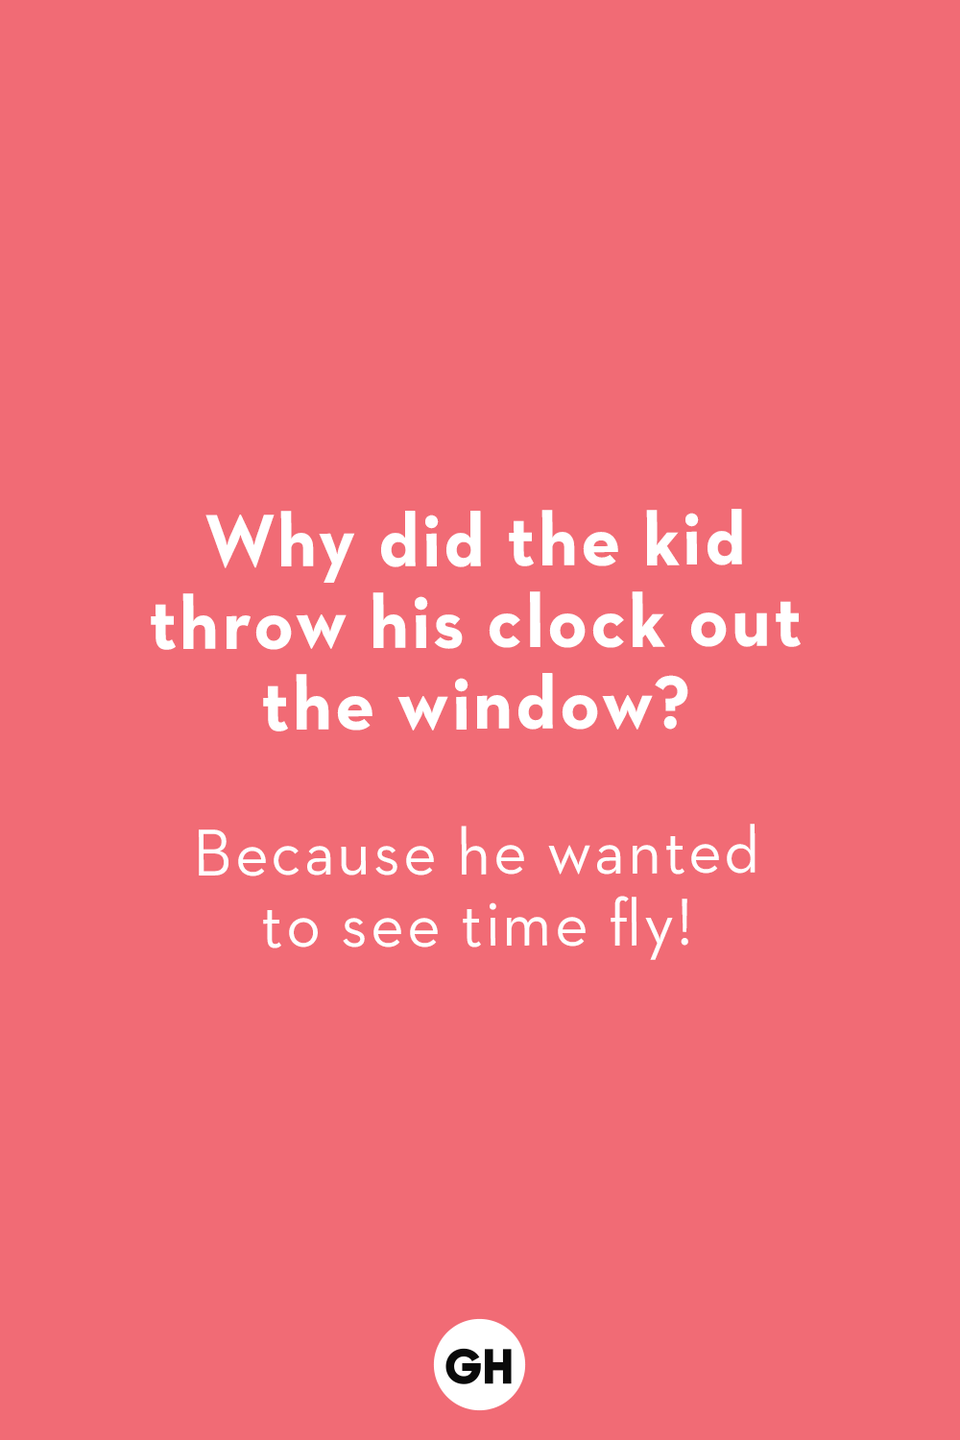 <p>Because he wanted to see time fly!<br></p>